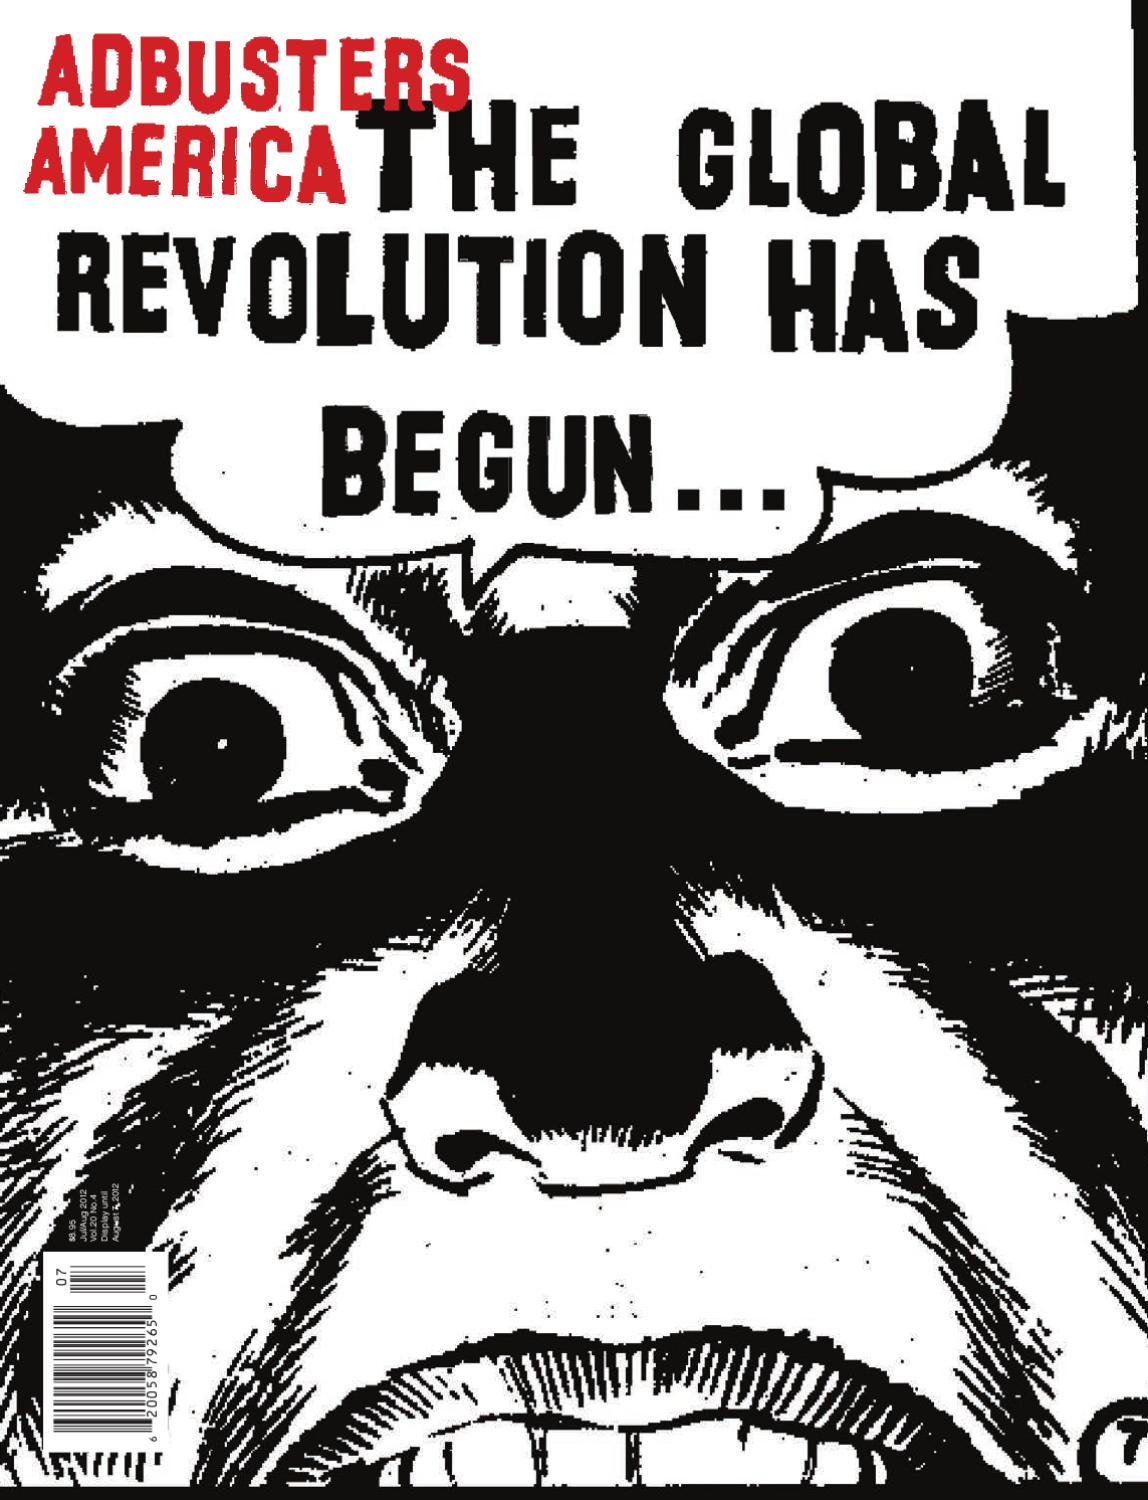 Adbusters 102: Spiritual Insurrection by Adbusters